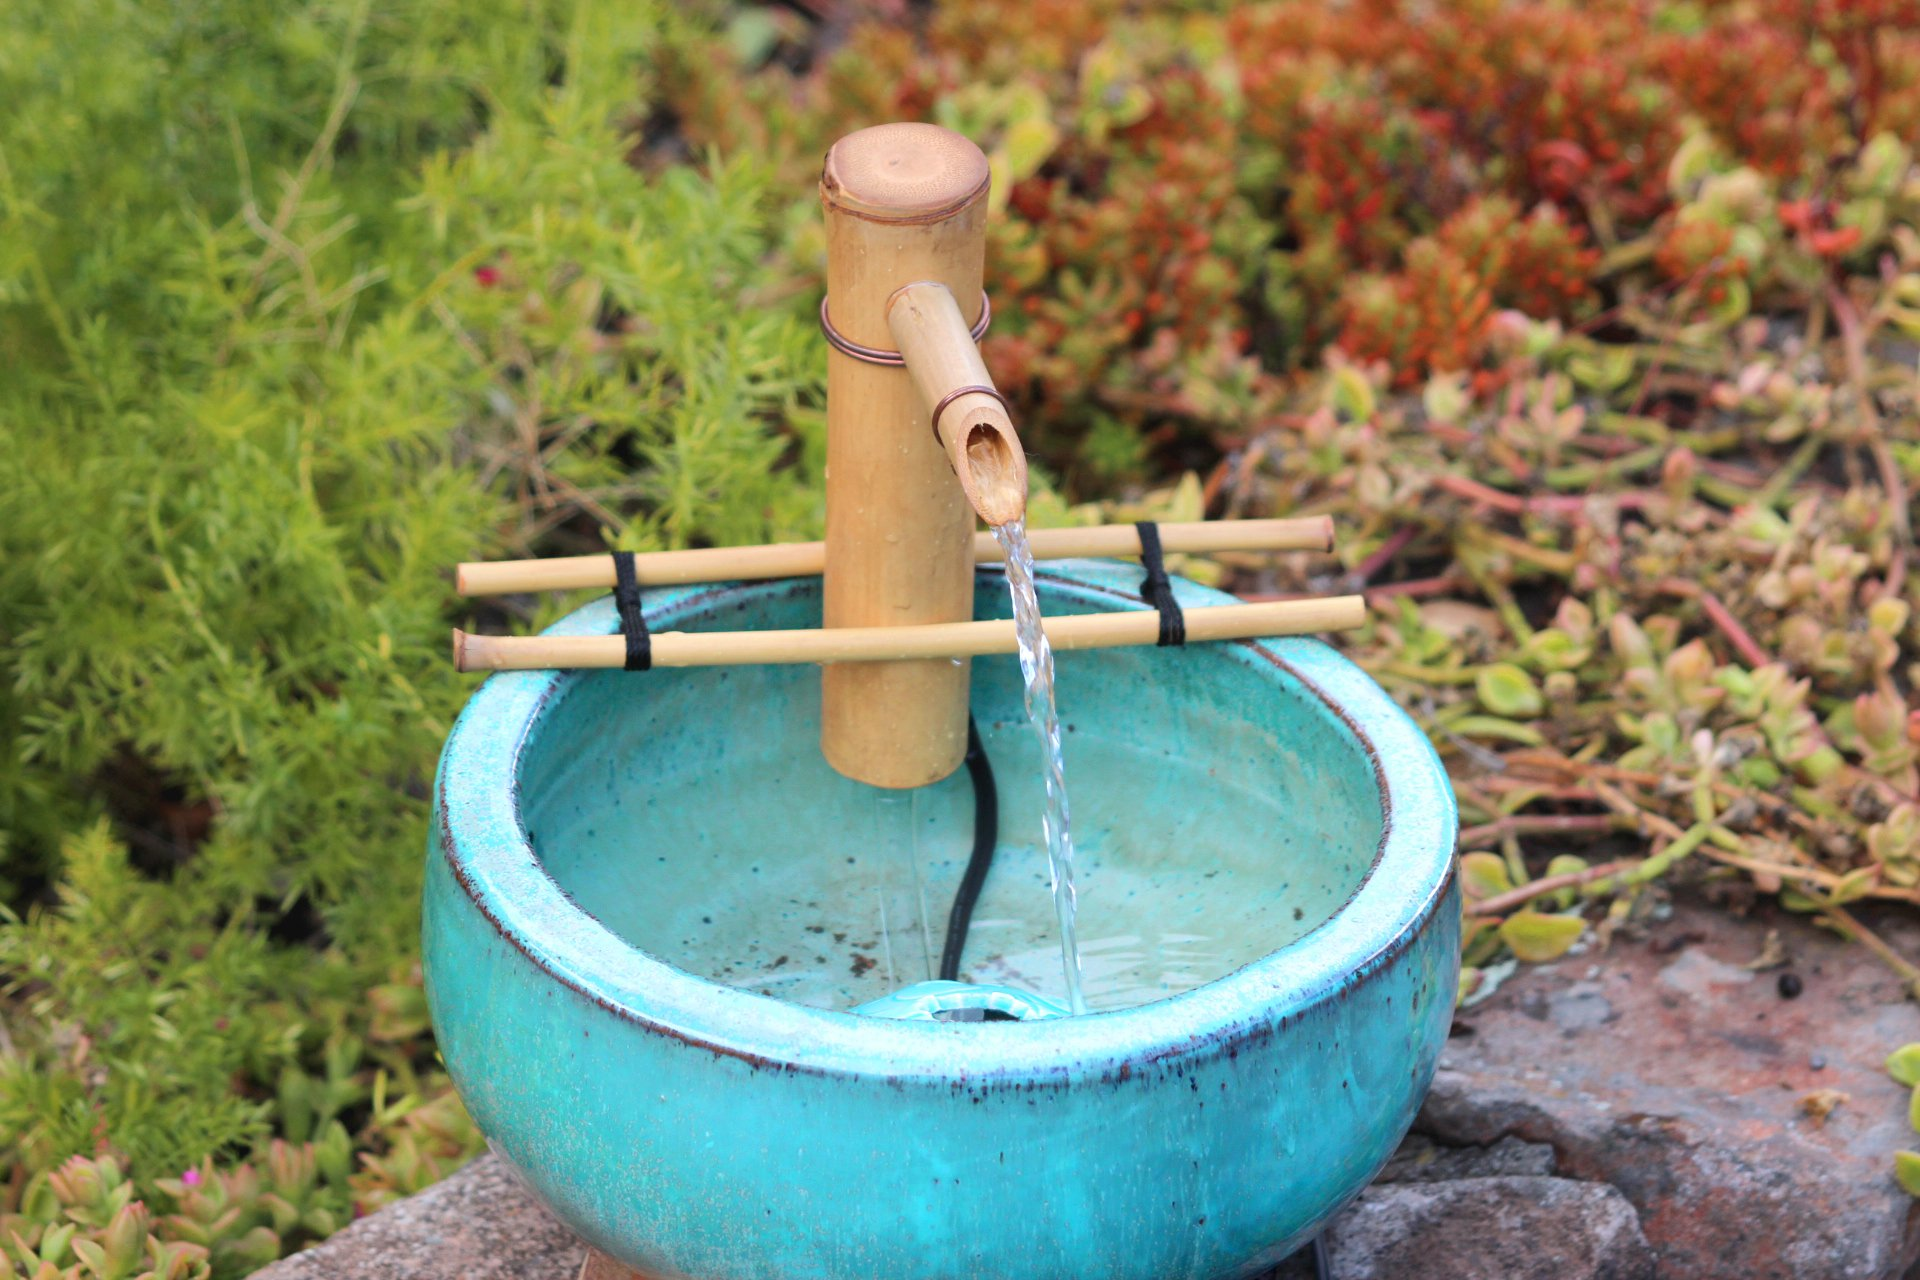 Bamboo Accents 7 Inch Adjustable Branch Arm Natural Bamboo Fountain and Pump Kit for Use with Any Container. Split Resistant, Handmade, Indoor Outdoor by Bamboo Accents